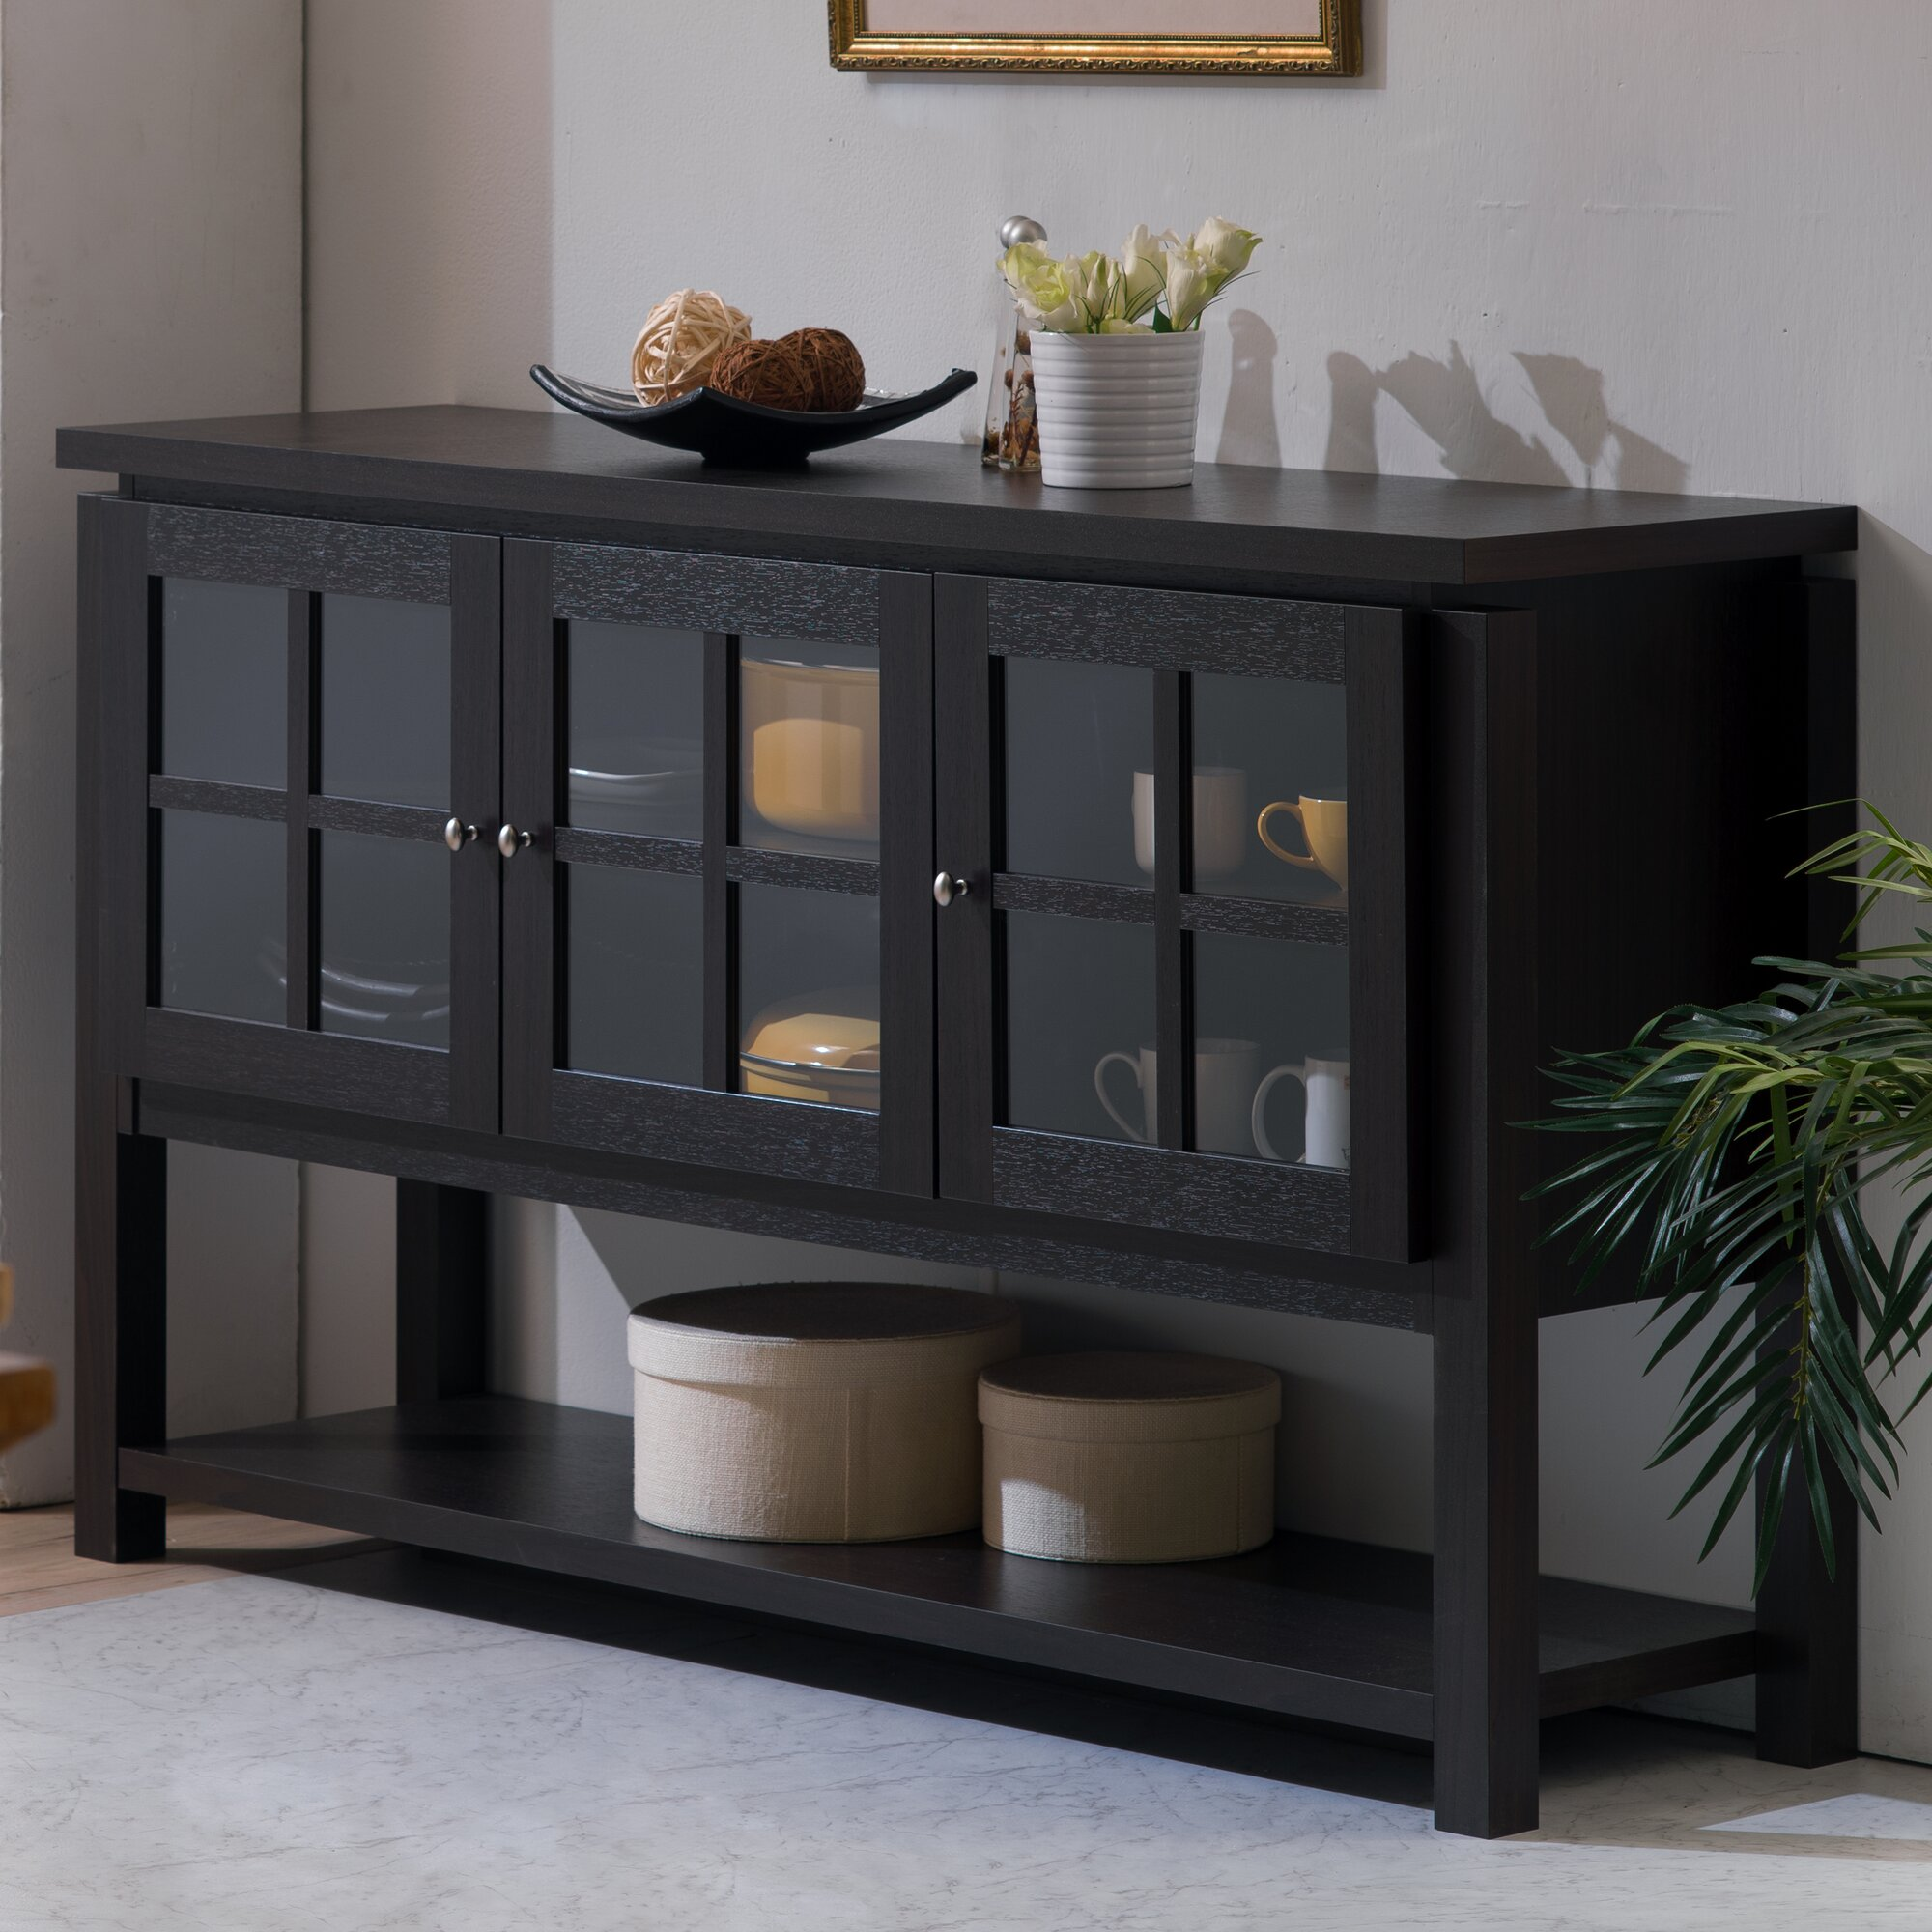 Pottery barn dining room buffet - Sideboards Buffet Tables Youll Love Wayfair